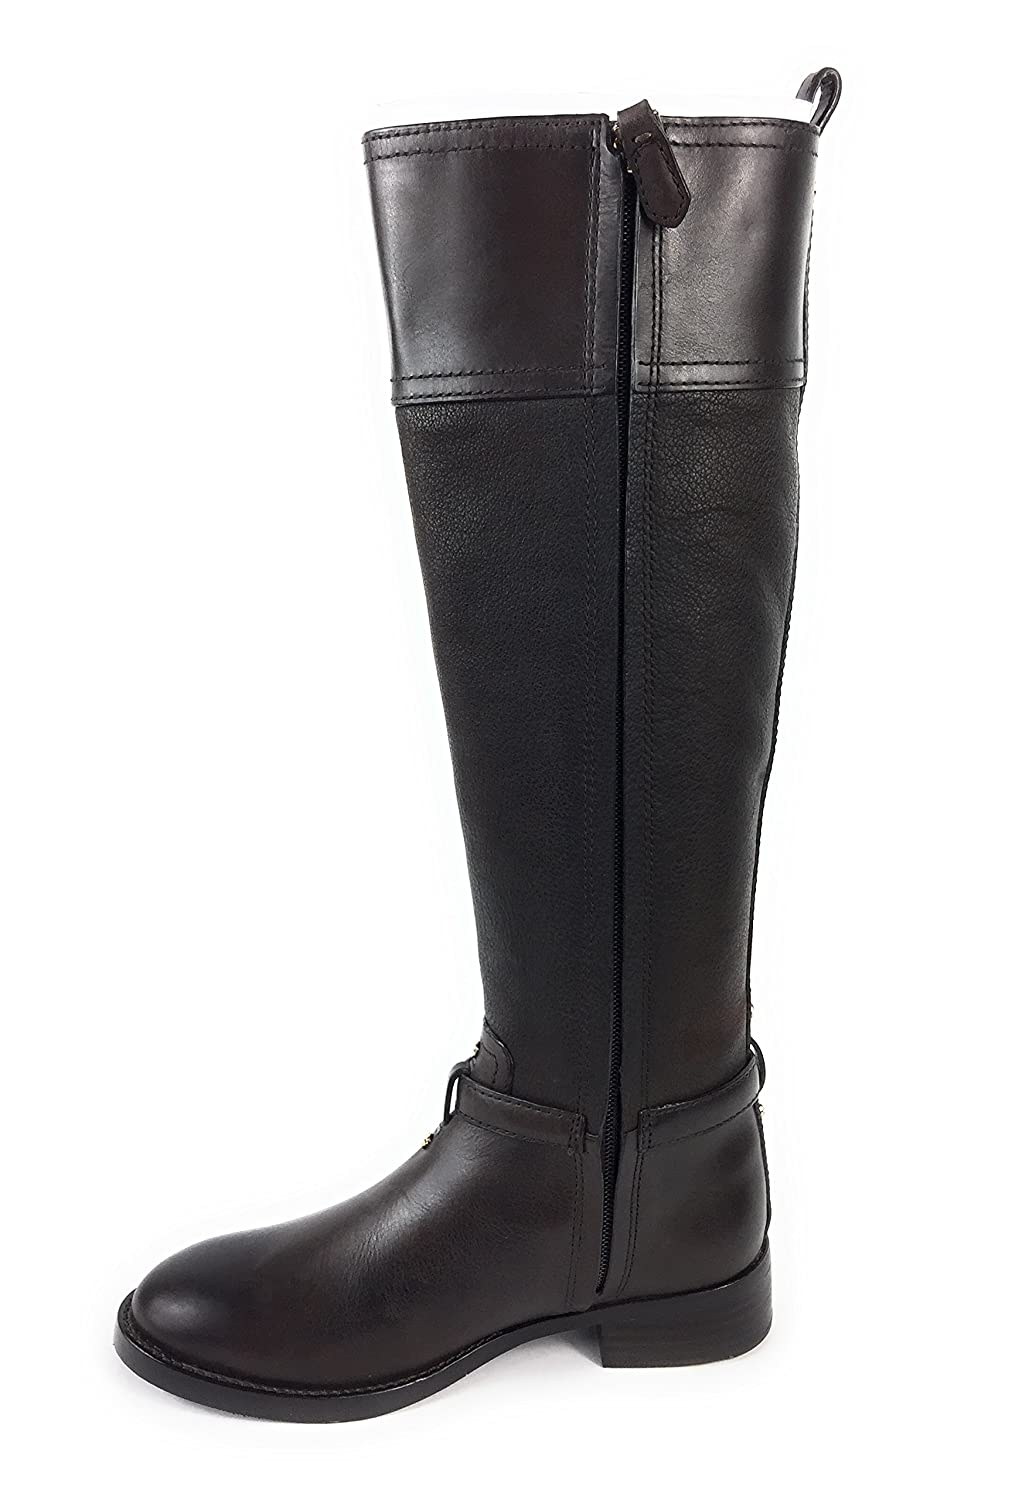 34e71470372 Amazon.com   Tory Burch Simone 35mm Tall Riding Boot Chocolate Buffalo  Leather 4   Sports   Outdoors